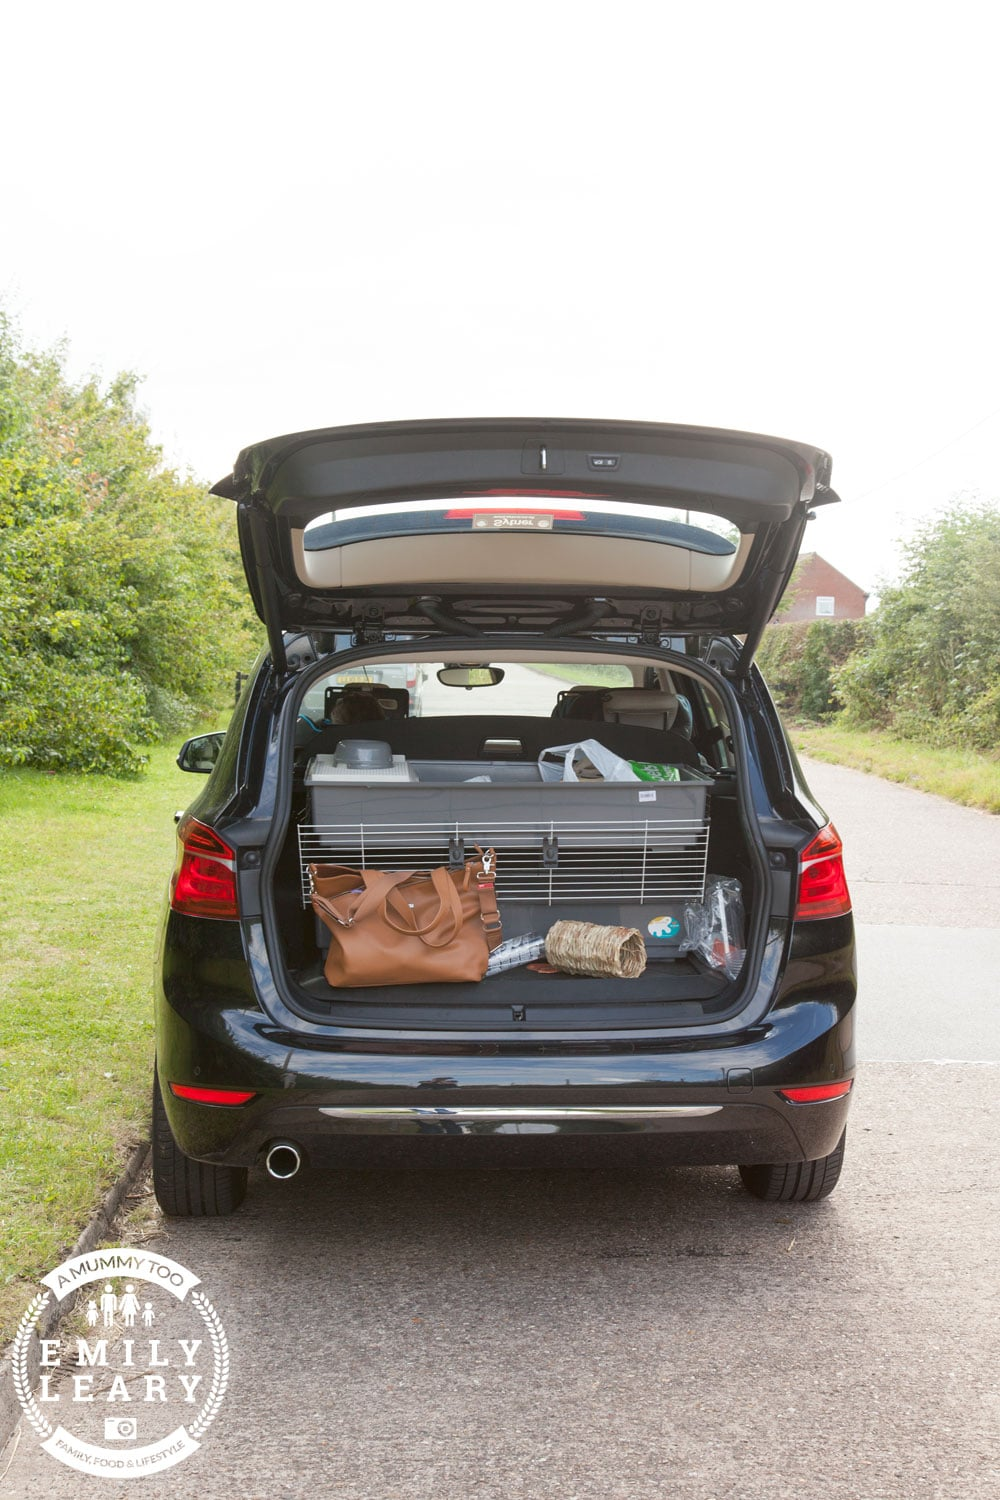 BMW-inside-bootpacked-web